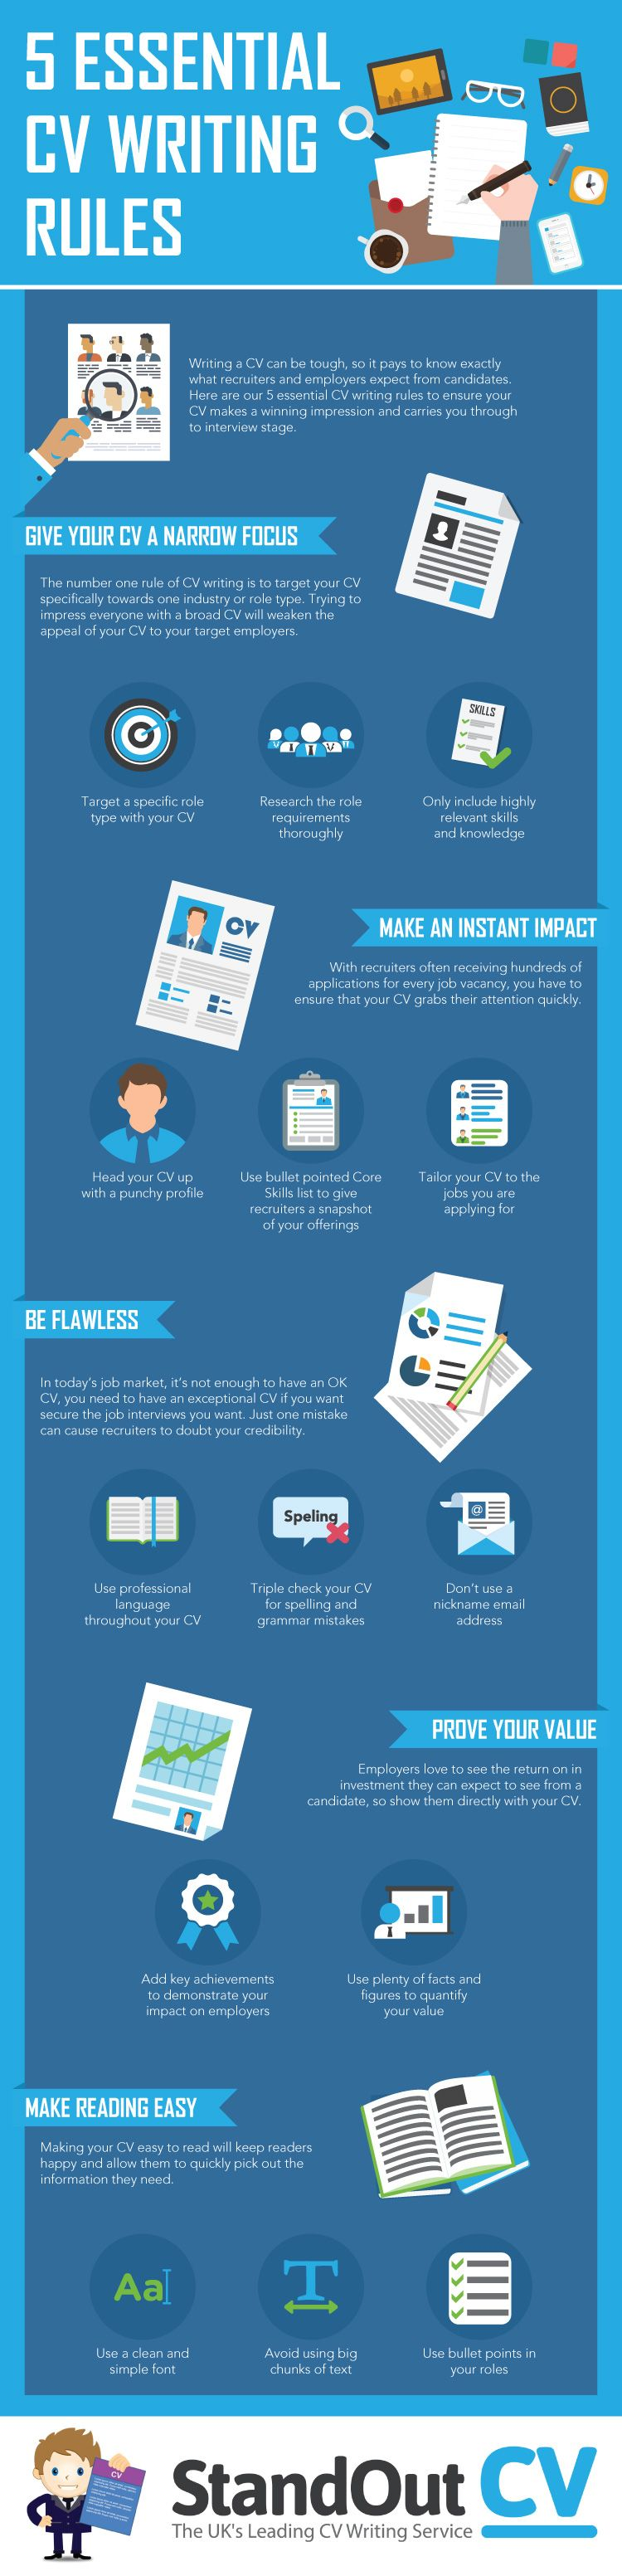 5 Essential CV Writing Rules Infographic    Http://elearninginfographics.com/5